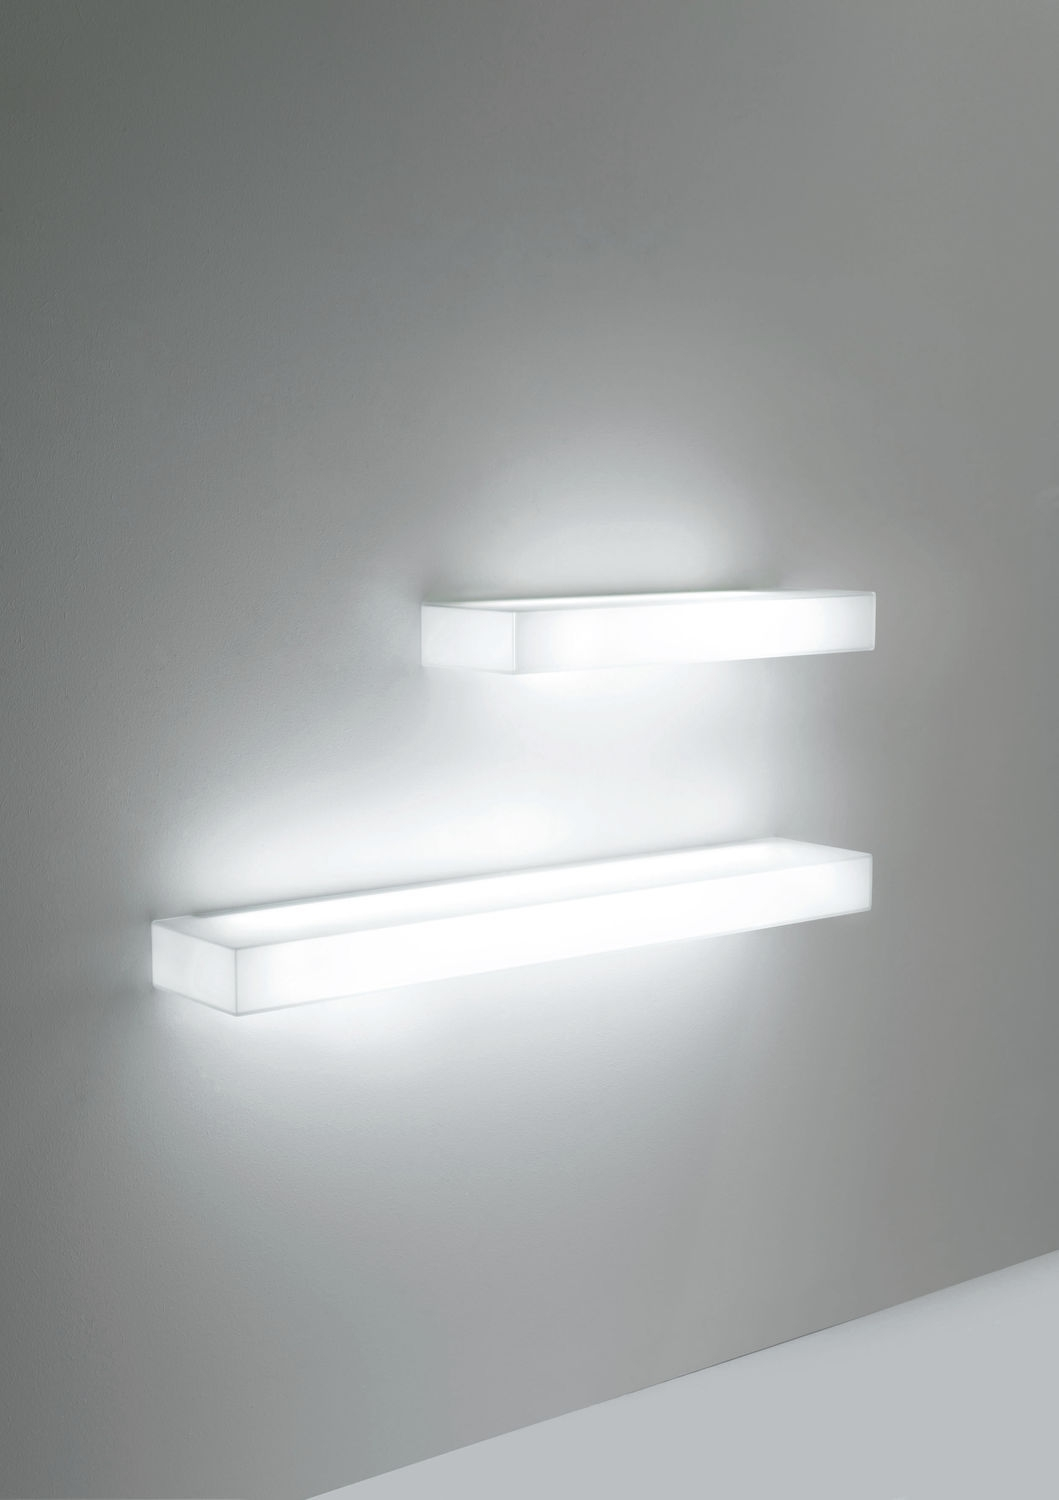 Wall Mounted Shelf Contemporary Glass Illuminated Light With Illuminated Glass Shelf (View 3 of 15)